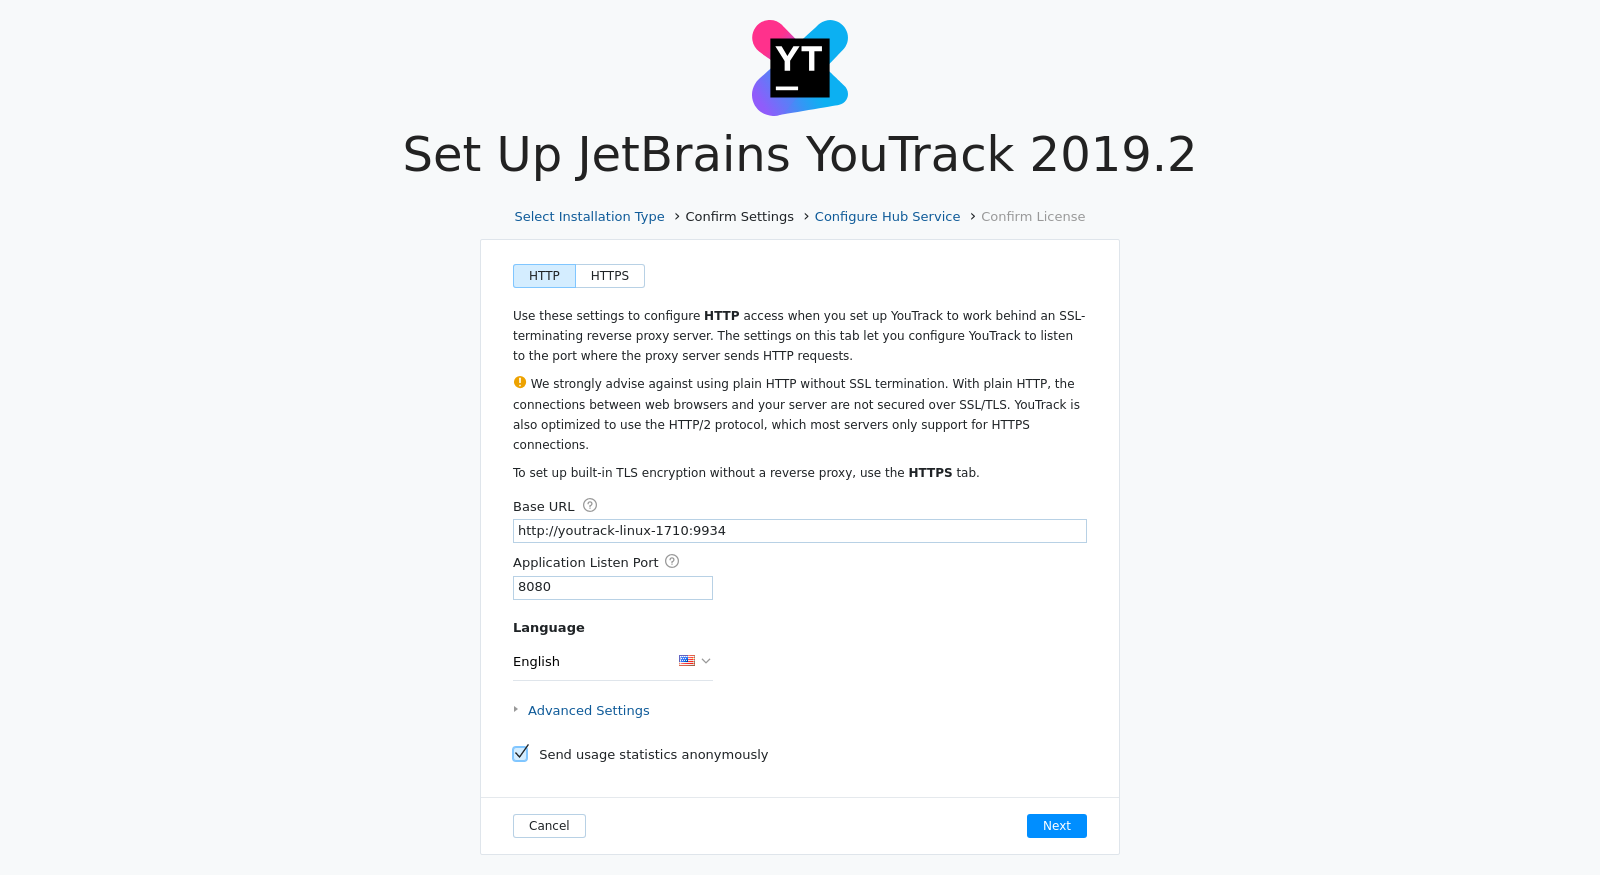 www jetbrains com/help/img/youtrack/2019 2/docker-